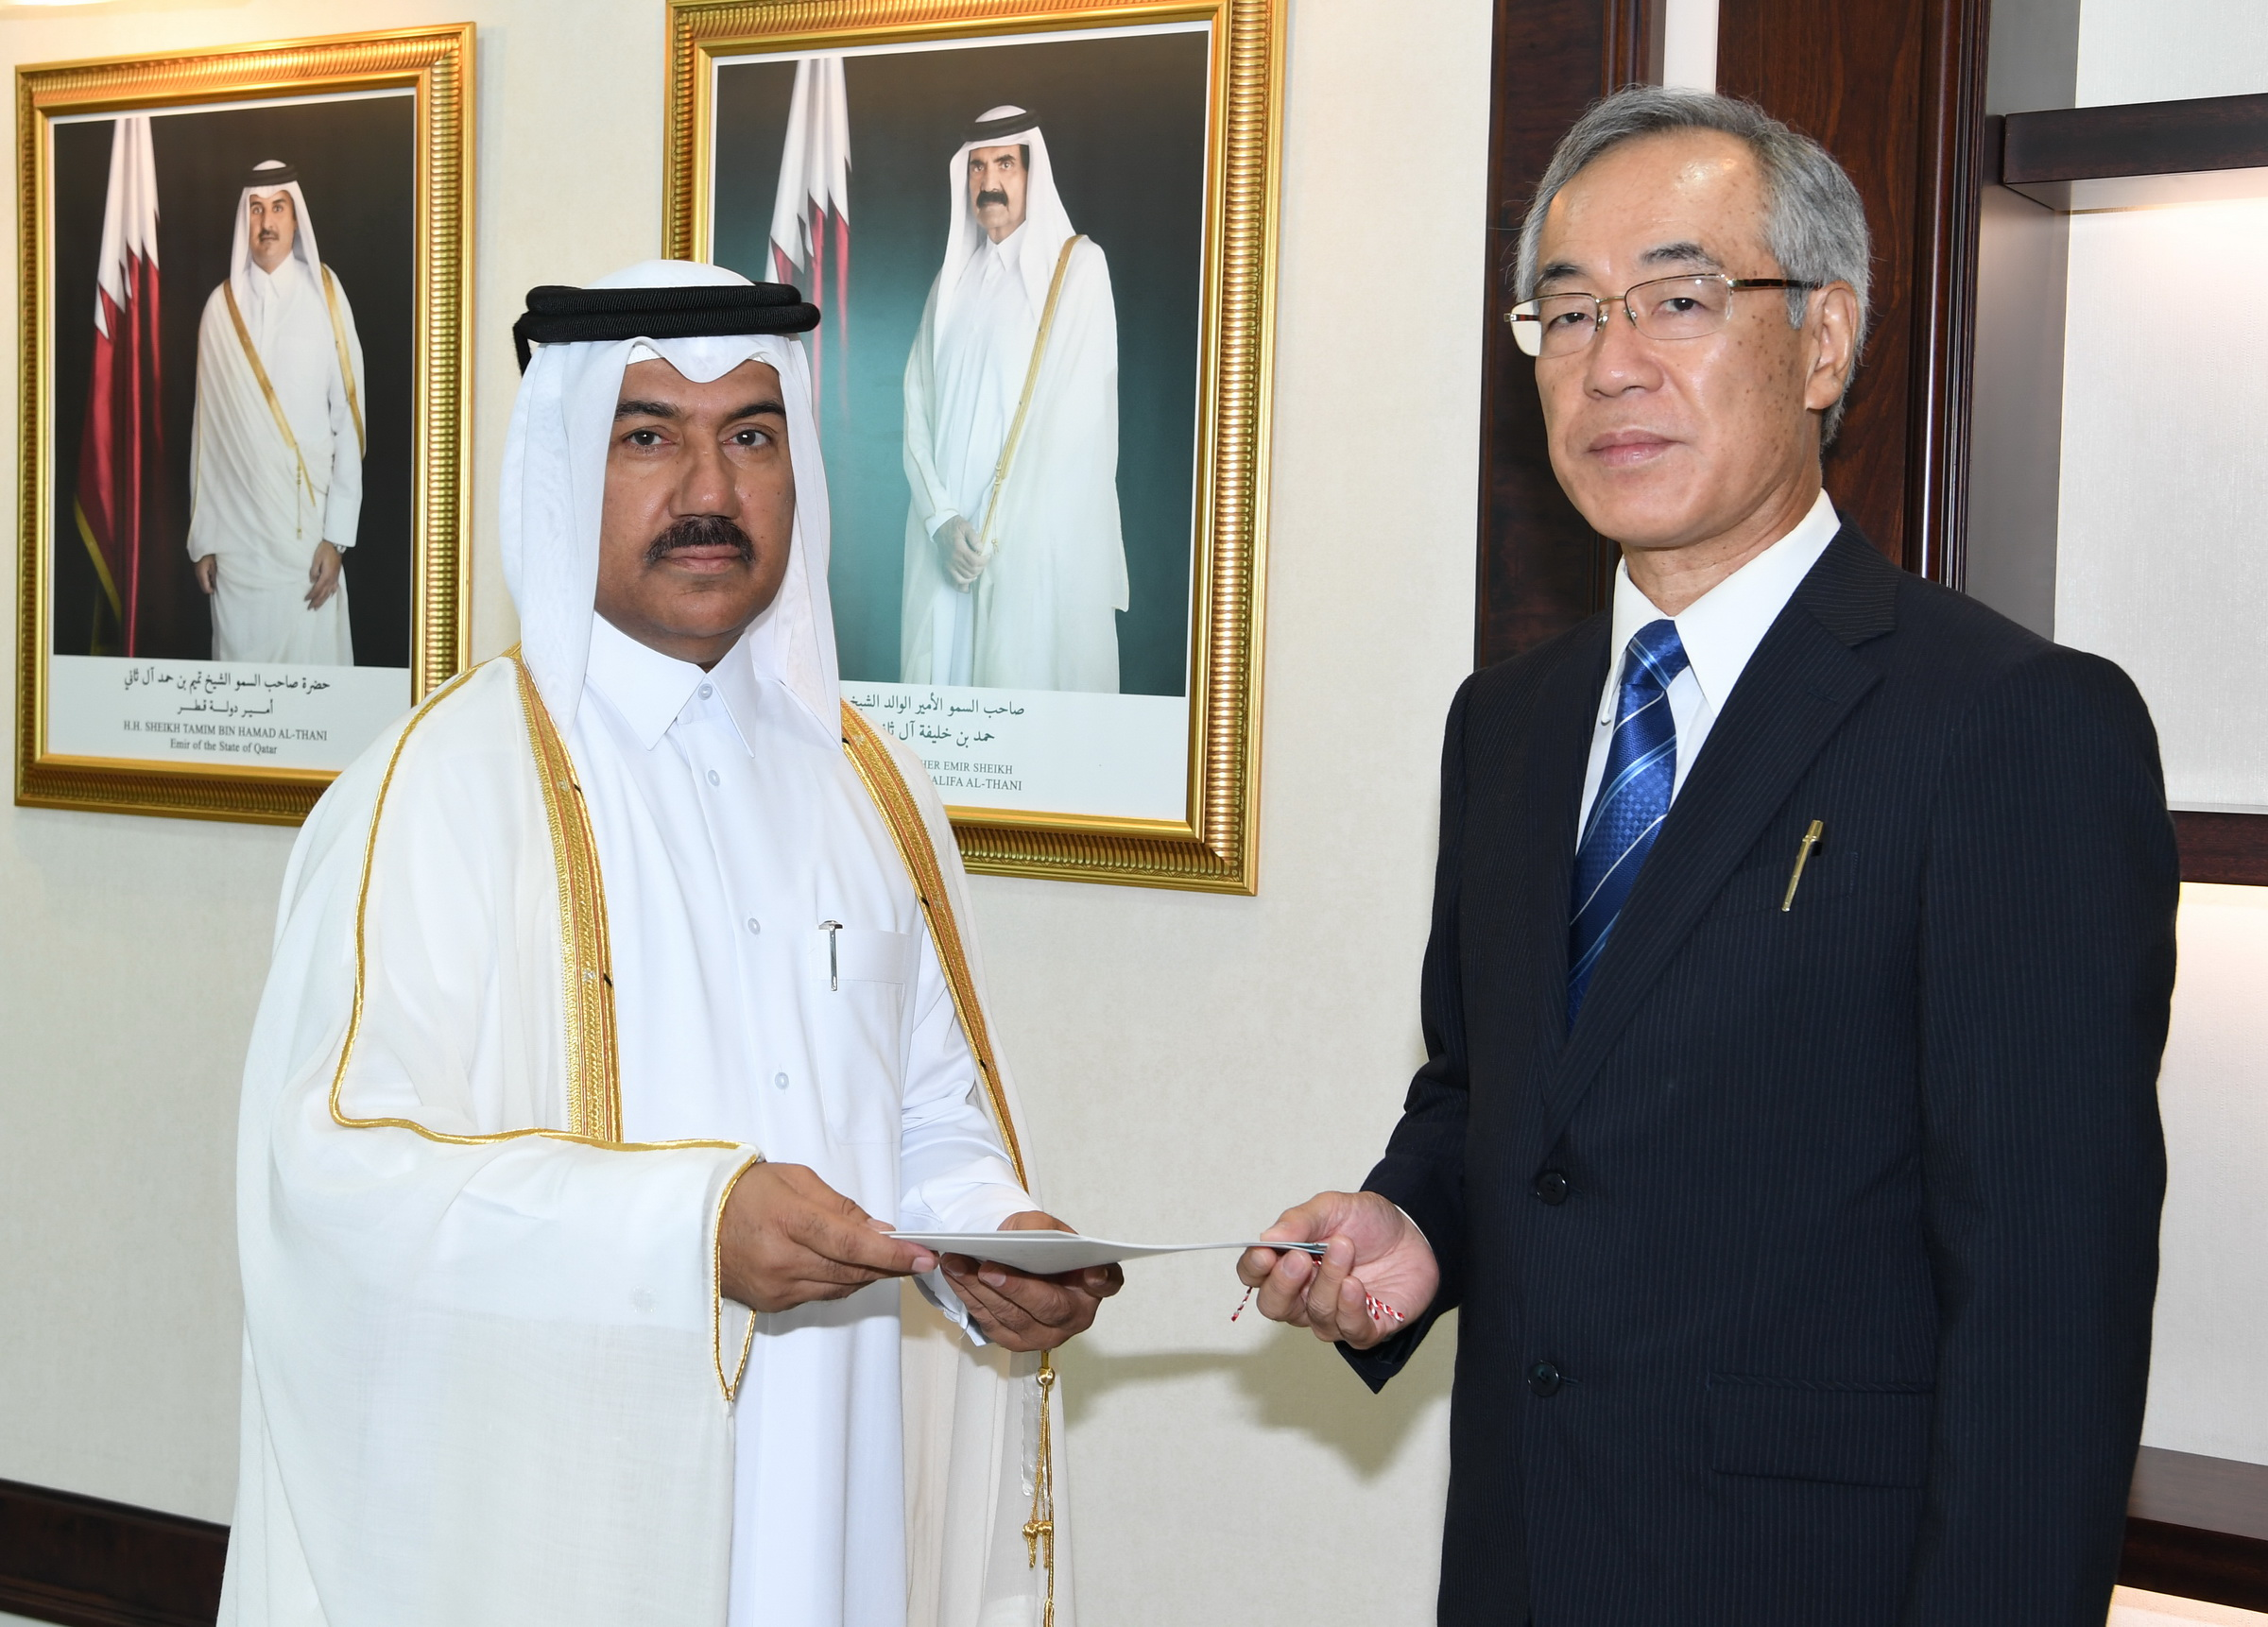 Foreign Ministry's Secretary-General Receives Copies of Ambassadors' Credentials